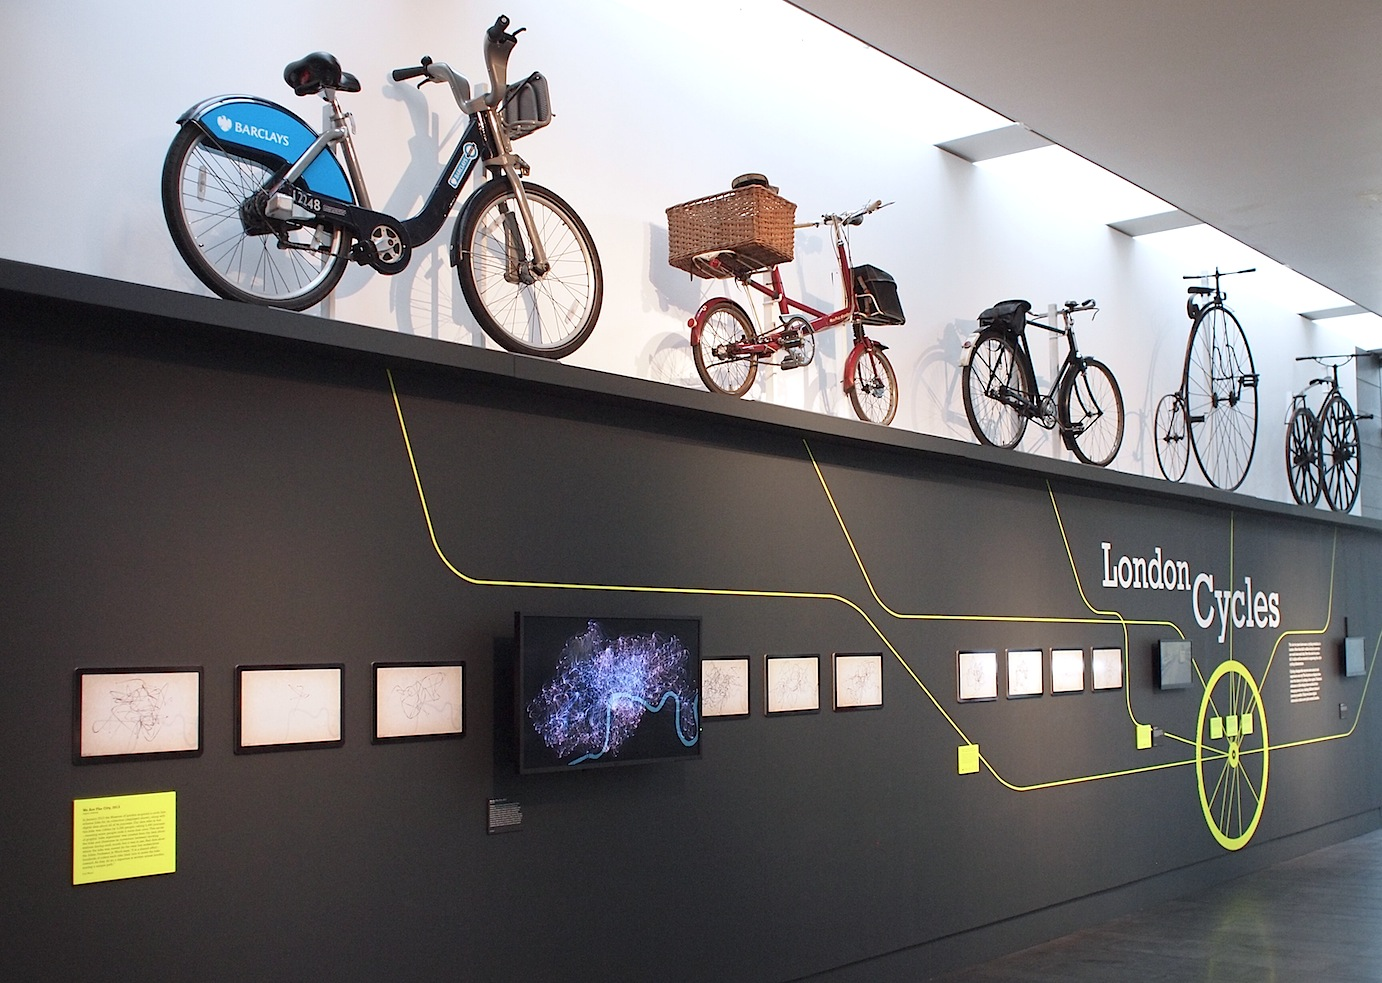 Part of the  London Cycles  exhibition at the Museum of London